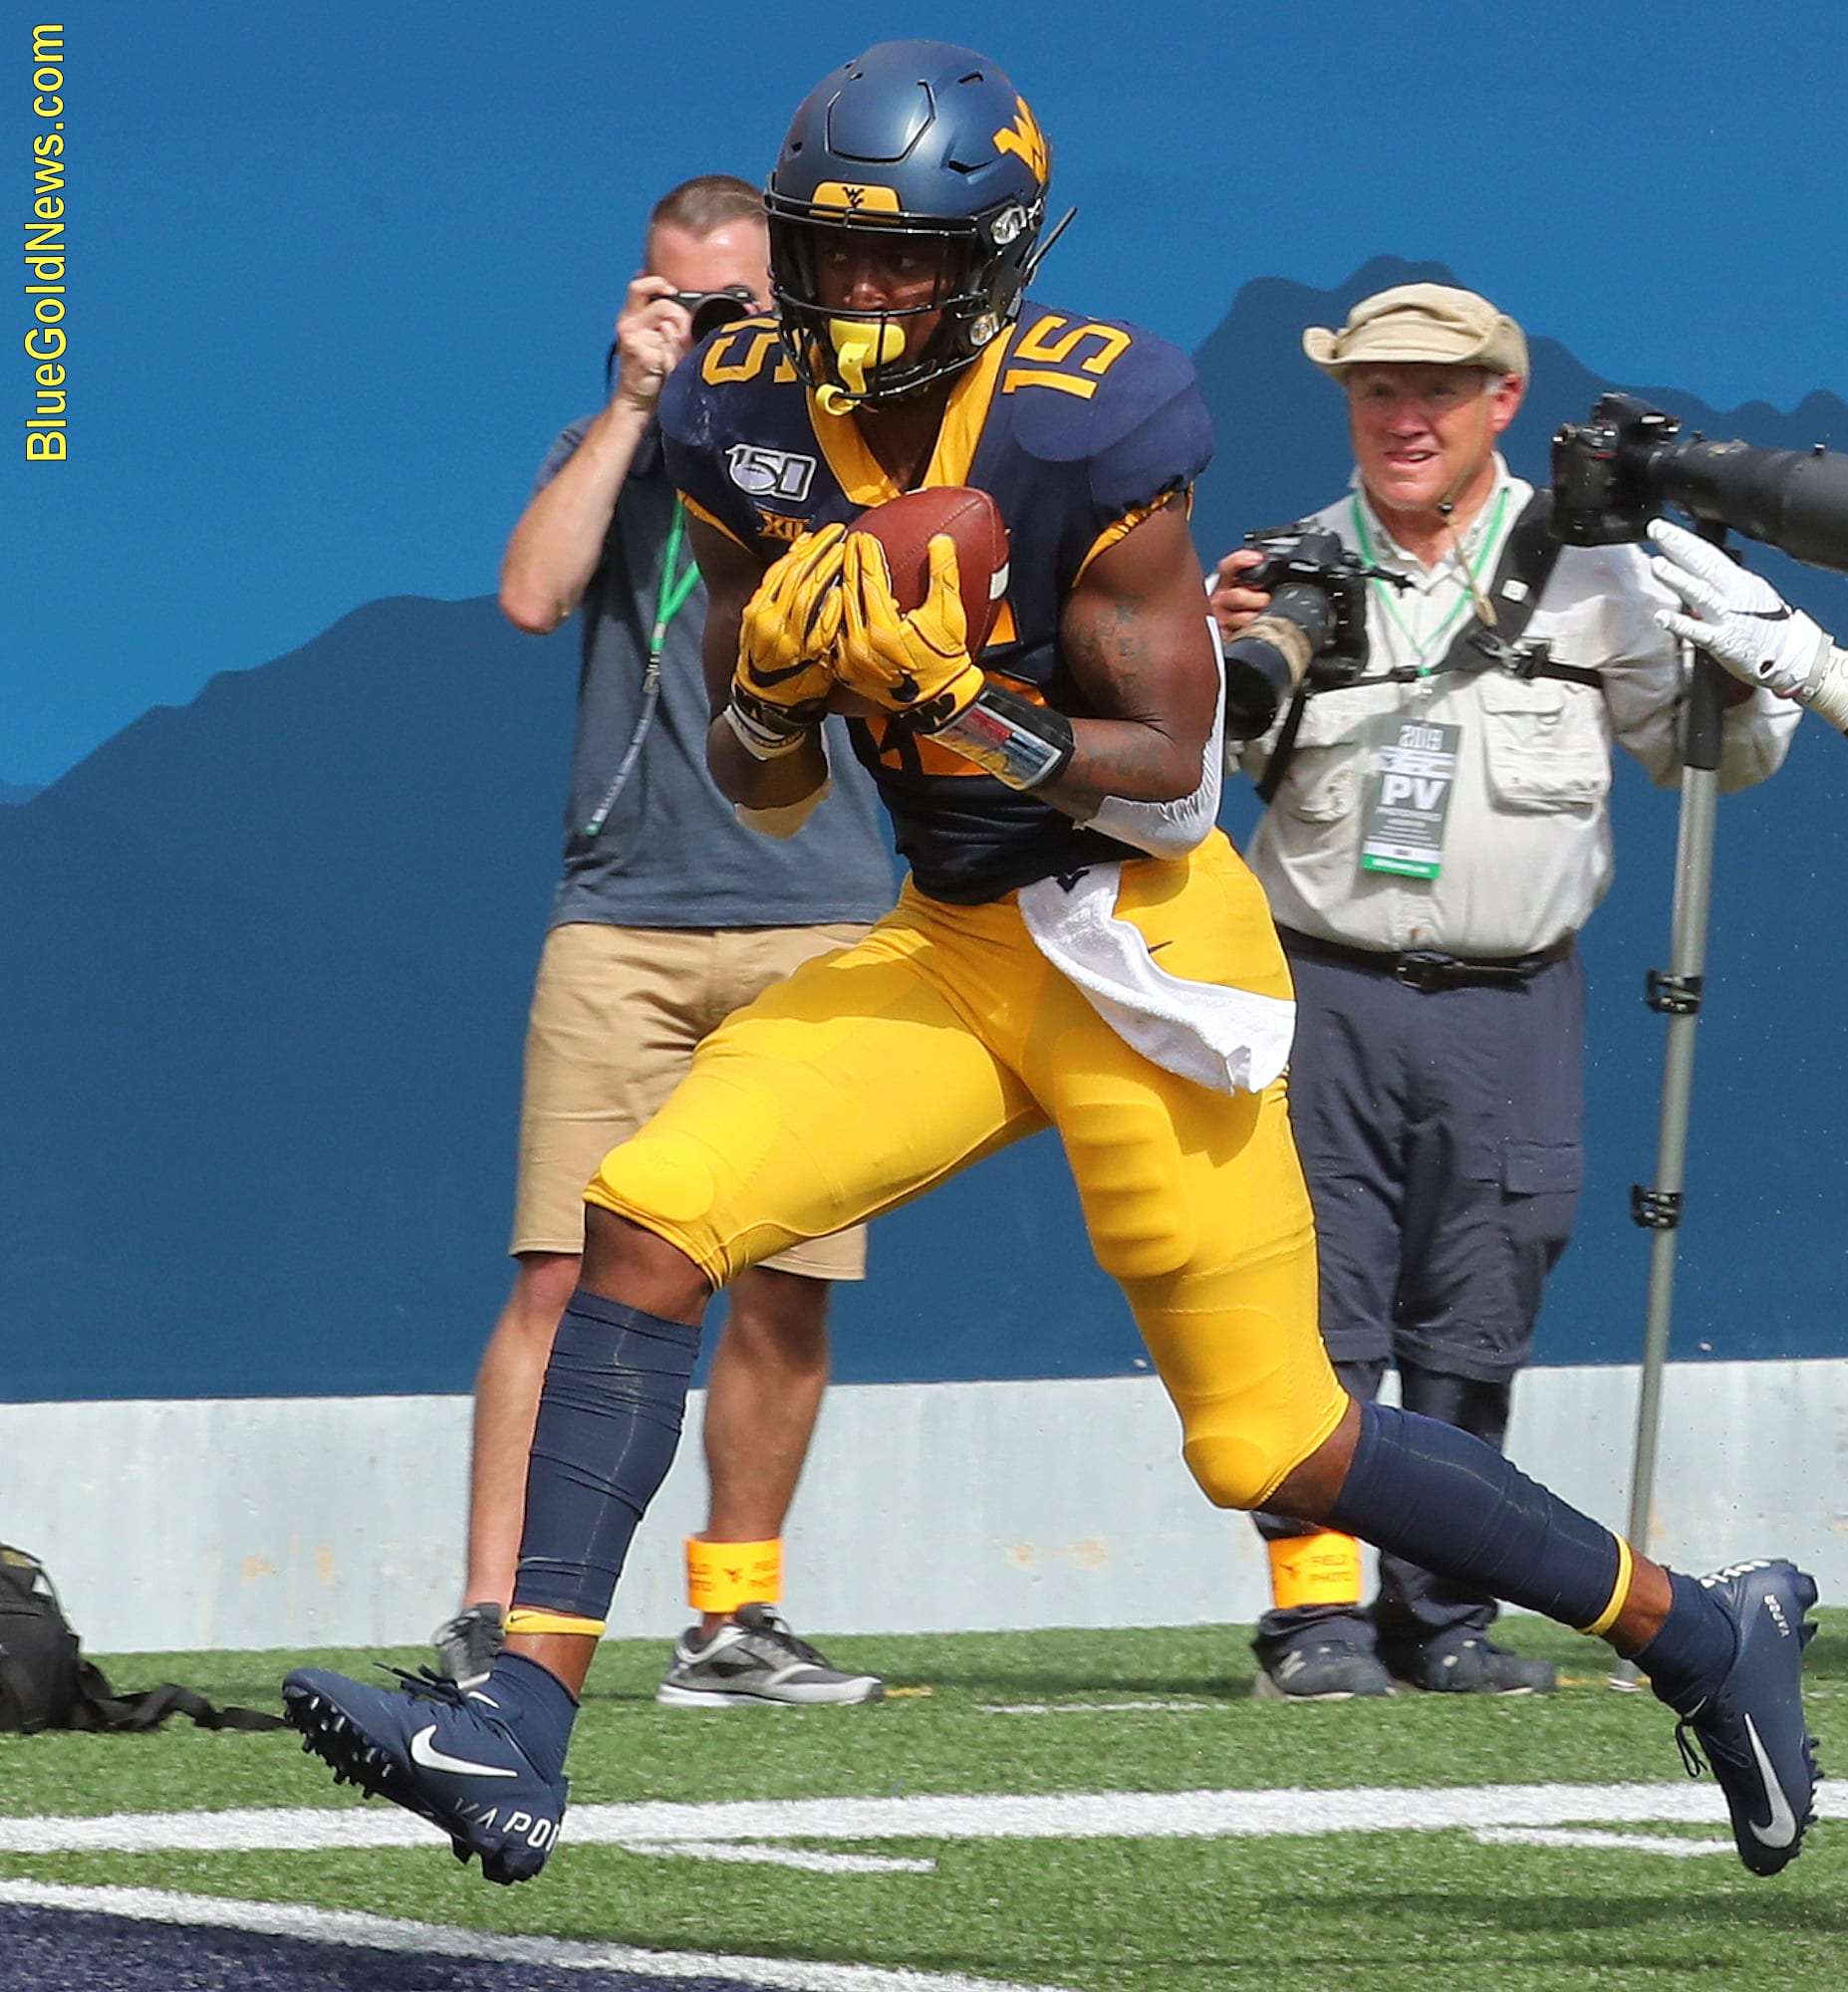 West Virginia wide receiver George Campbell cradles a touchdown pass against James Madison